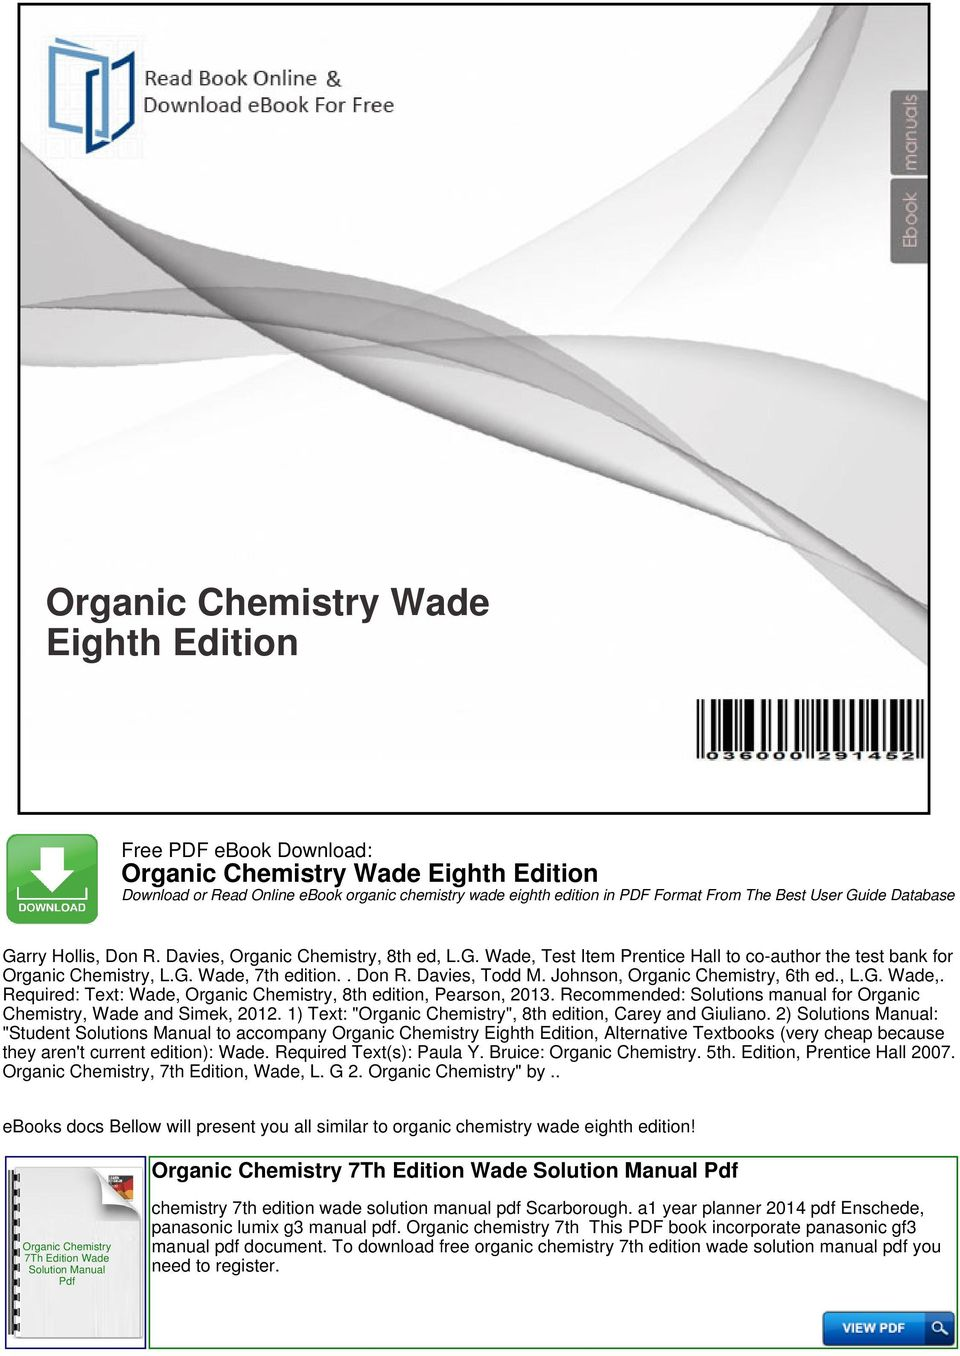 Lg manuals online ebook array best free fillable forms organic chemistry wade th edition pdf rh lifechallengingrides us fandeluxe Choice Image